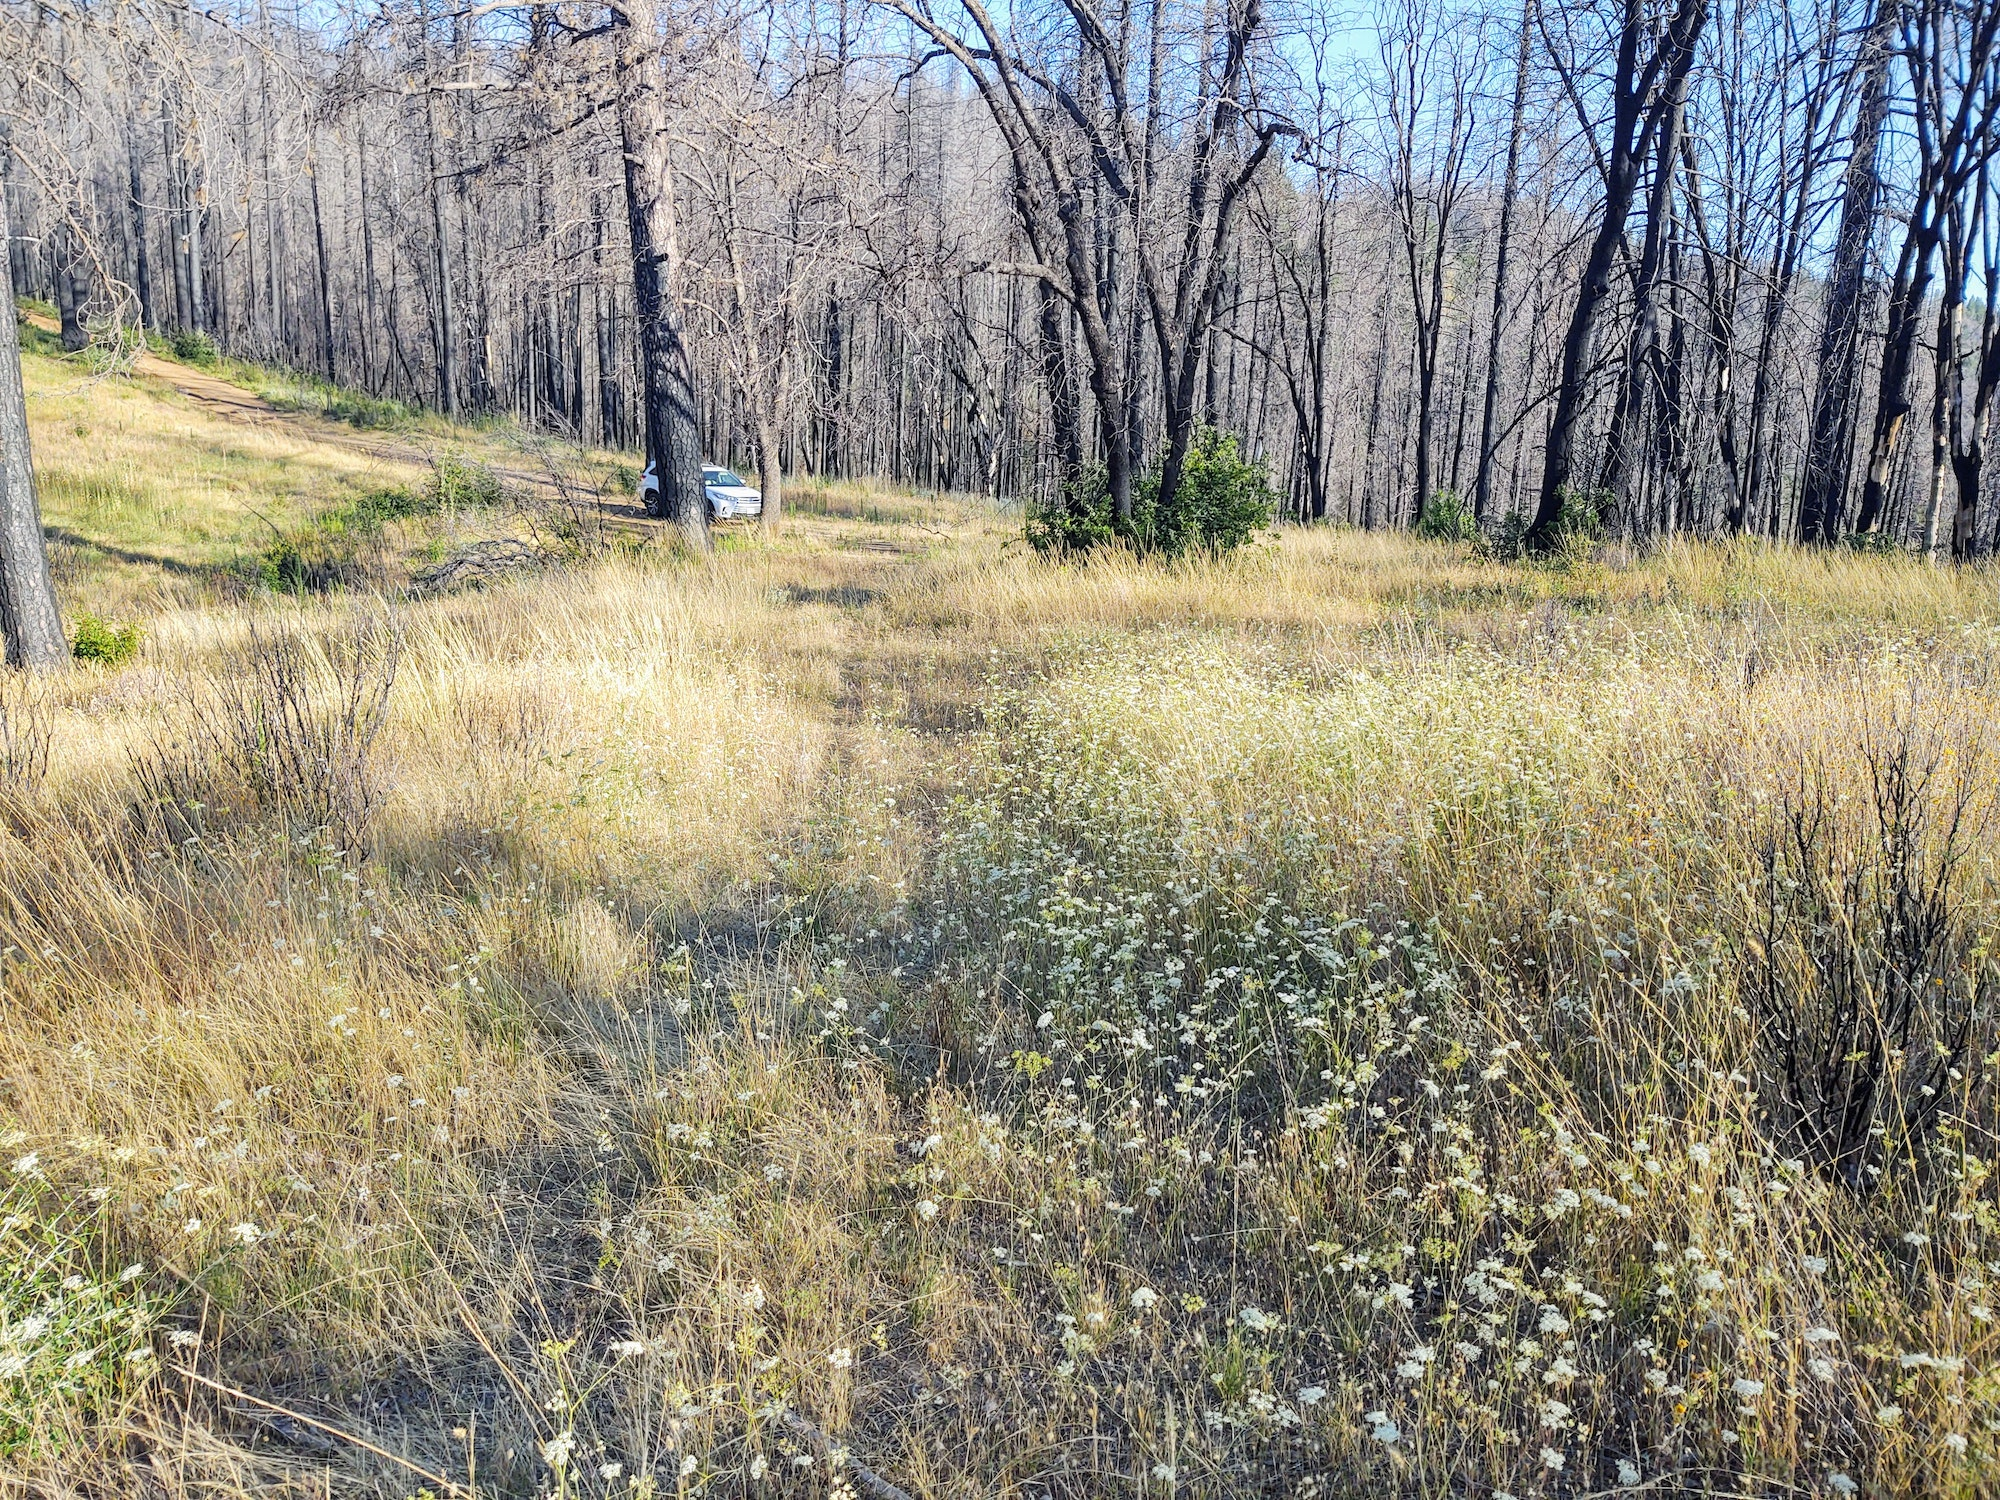 Future trail location through grassland and forest